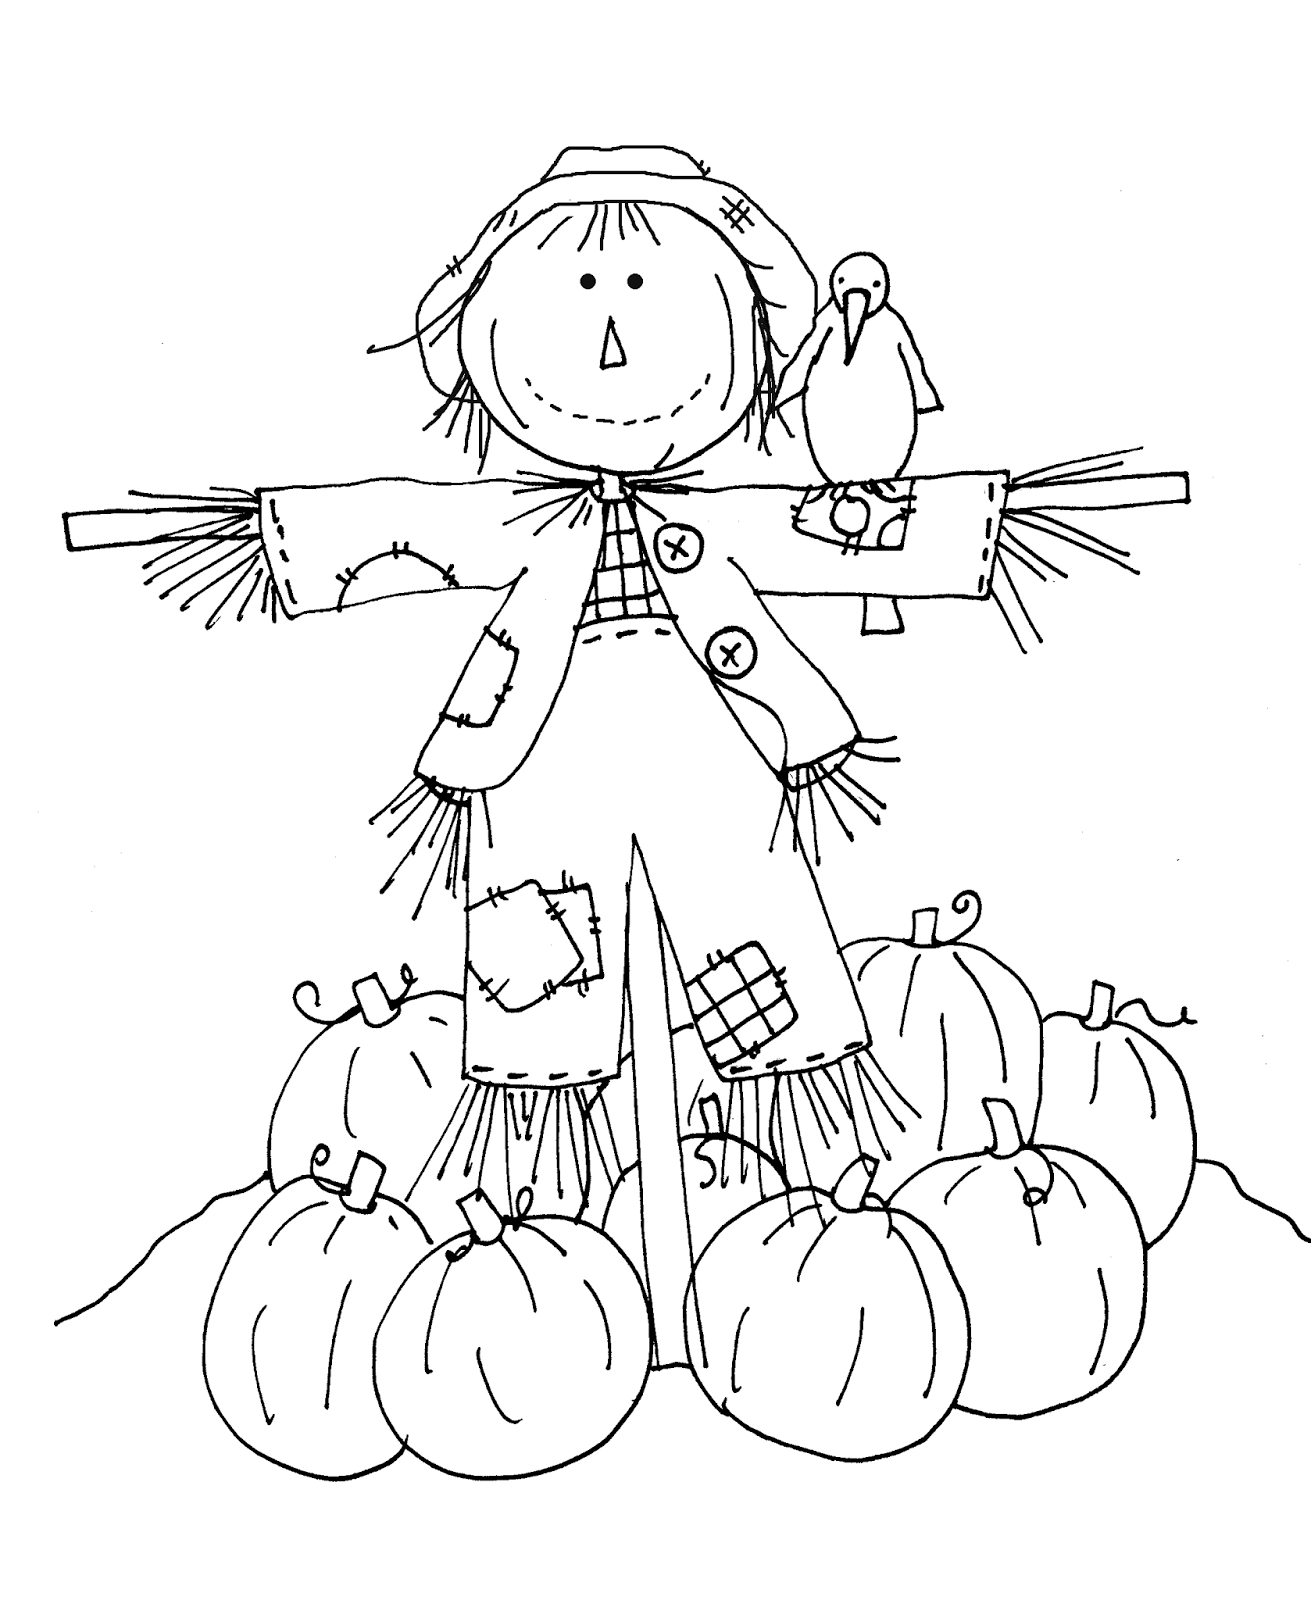 Printable Scarecrow Patterns Cut Out Sketch Coloring Page